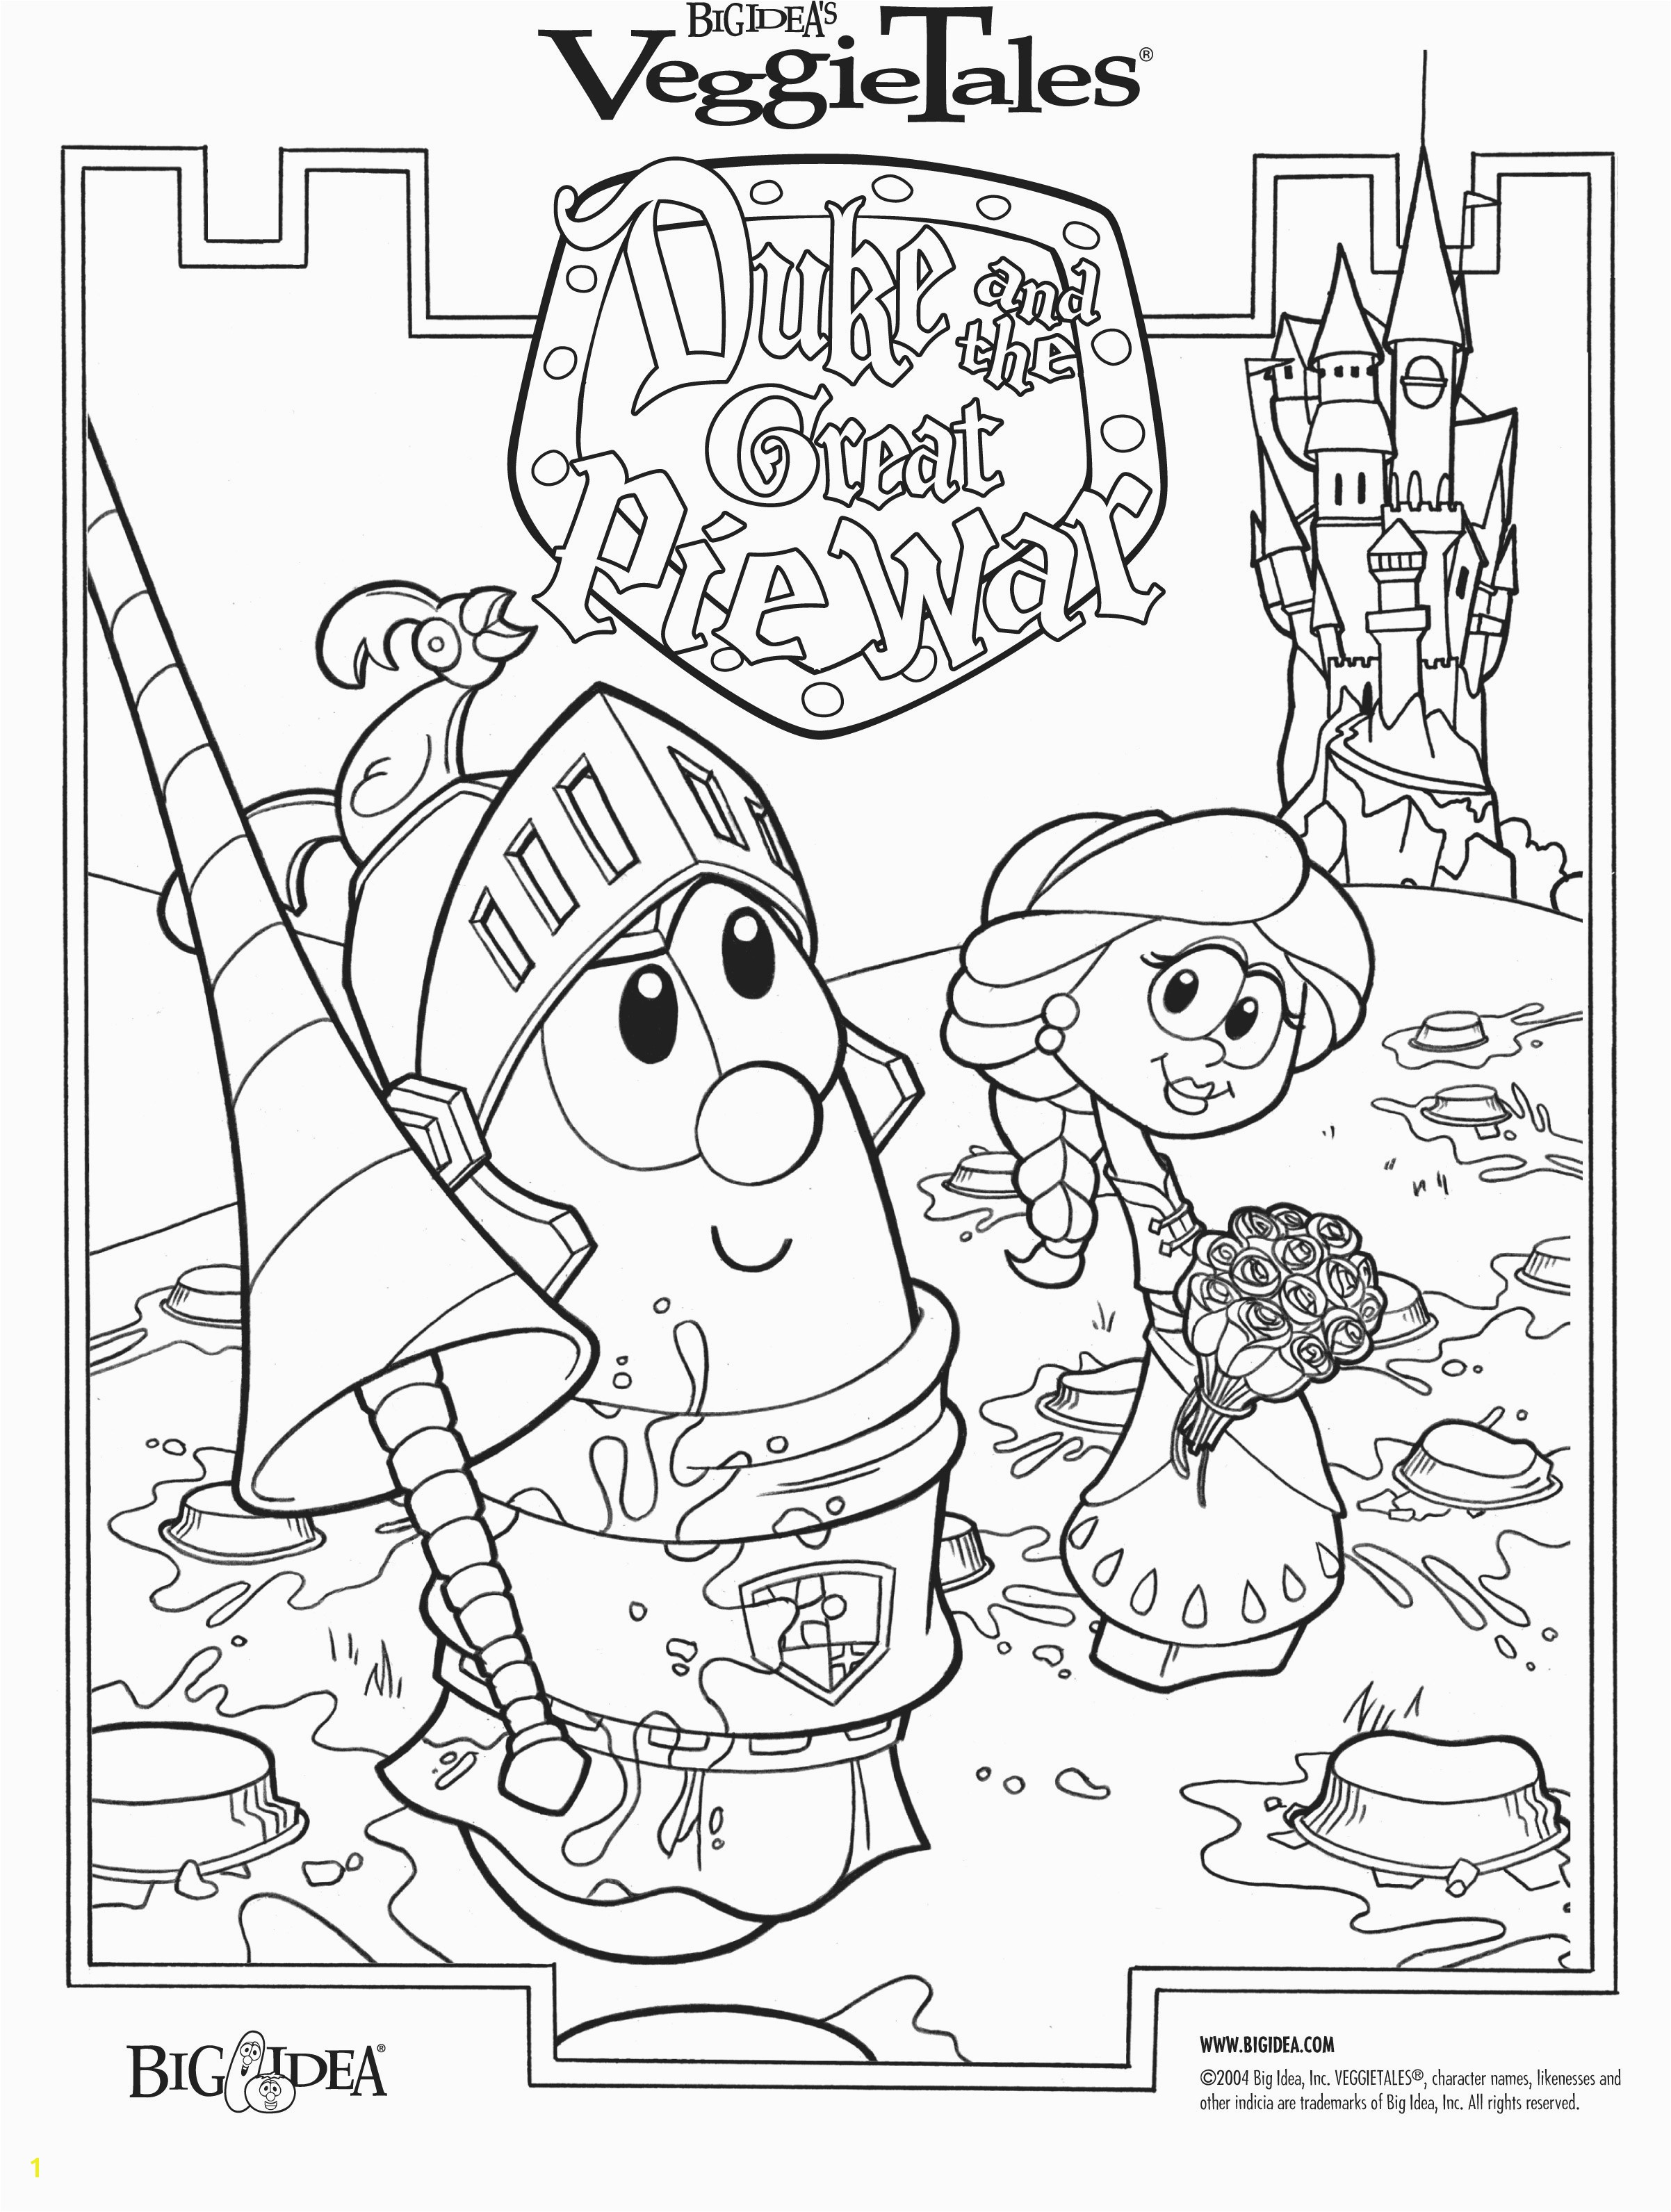 Jesus Heals A Paralytic Coloring Page Peter Heals the Lame Man Coloring Page Best Jesus Heals